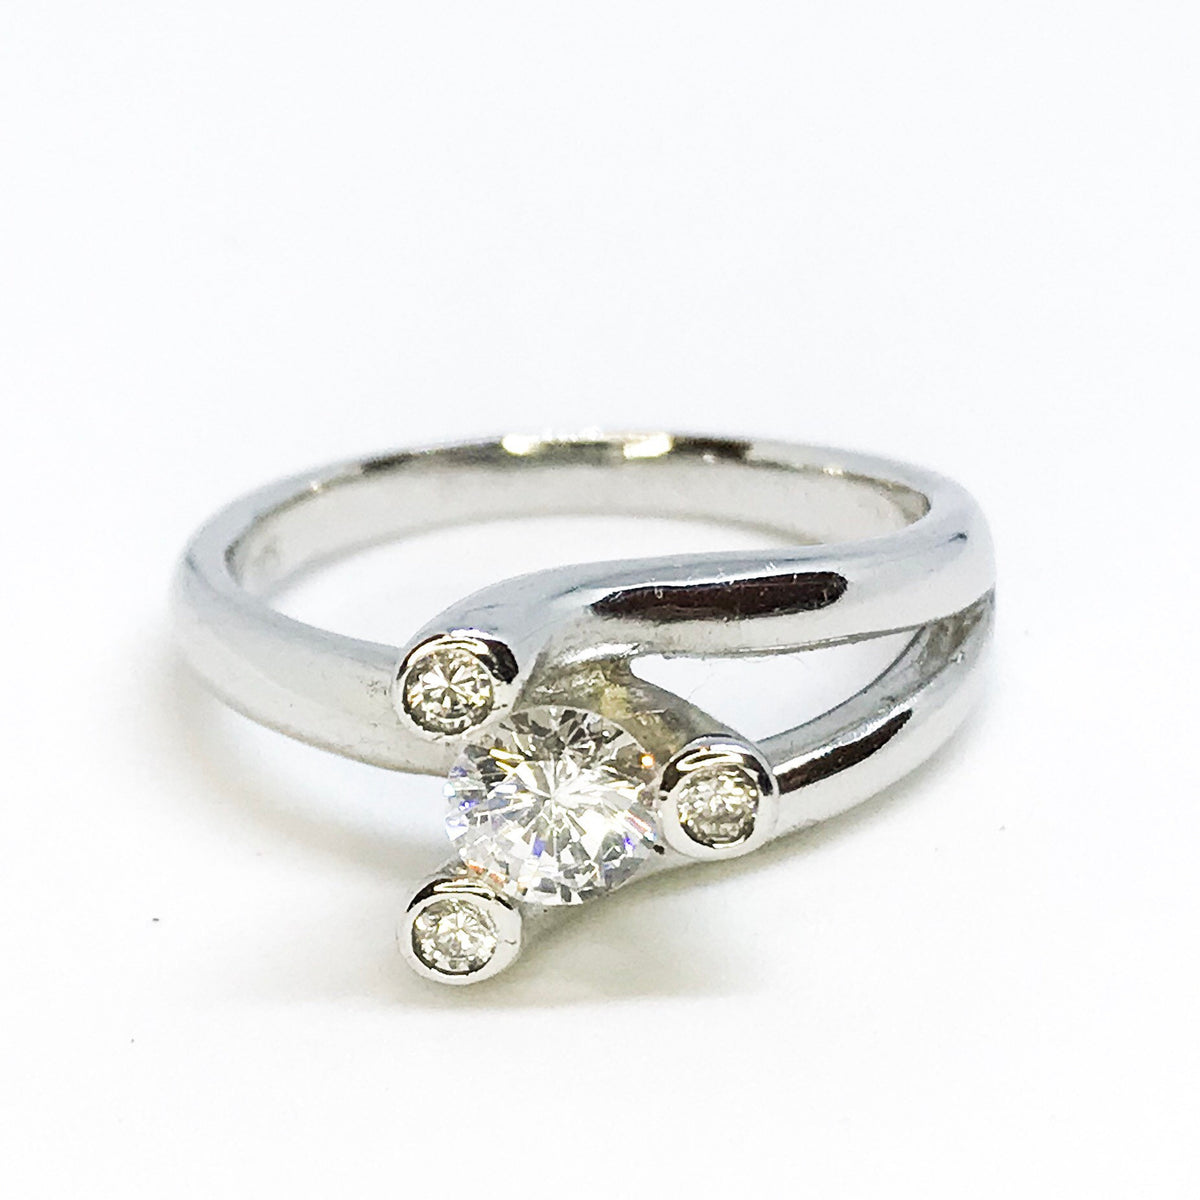 NEW 14K White Gold Layered on Sterling Silver Triangle Ring